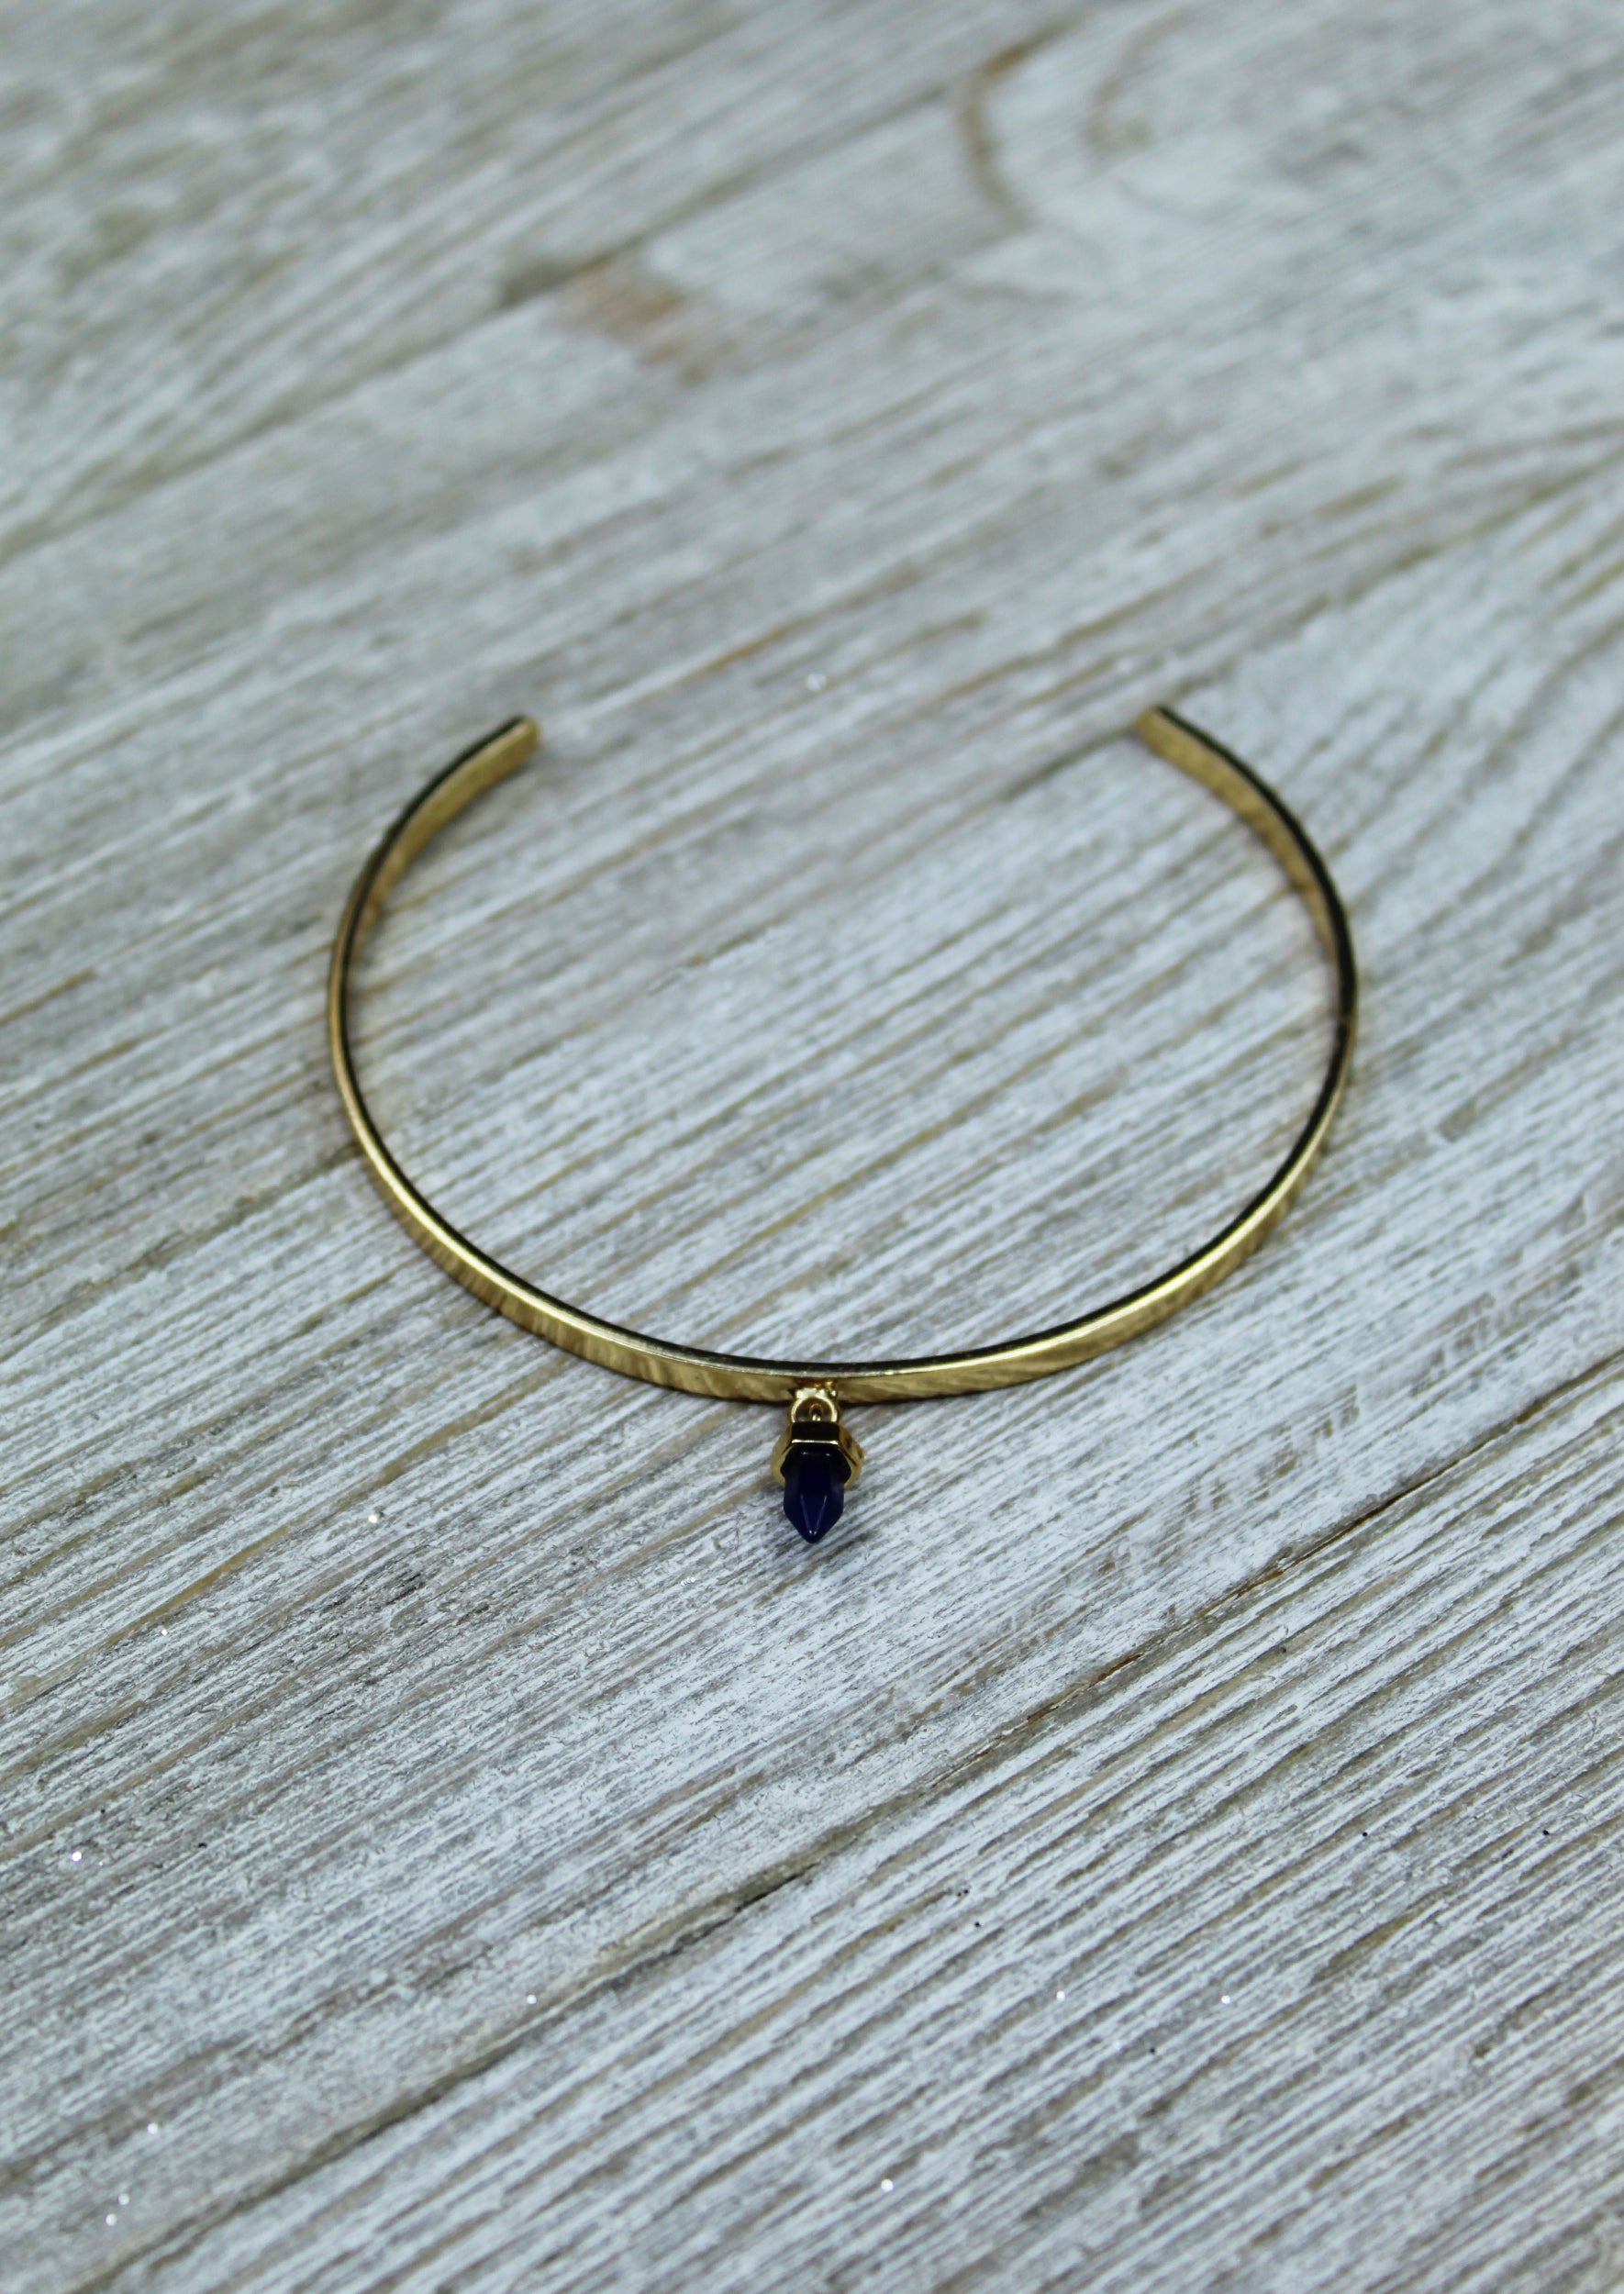 Faerydae Stone Charm Cuff - Jules Smith - 14K Gold Plated - Boho Jewelry